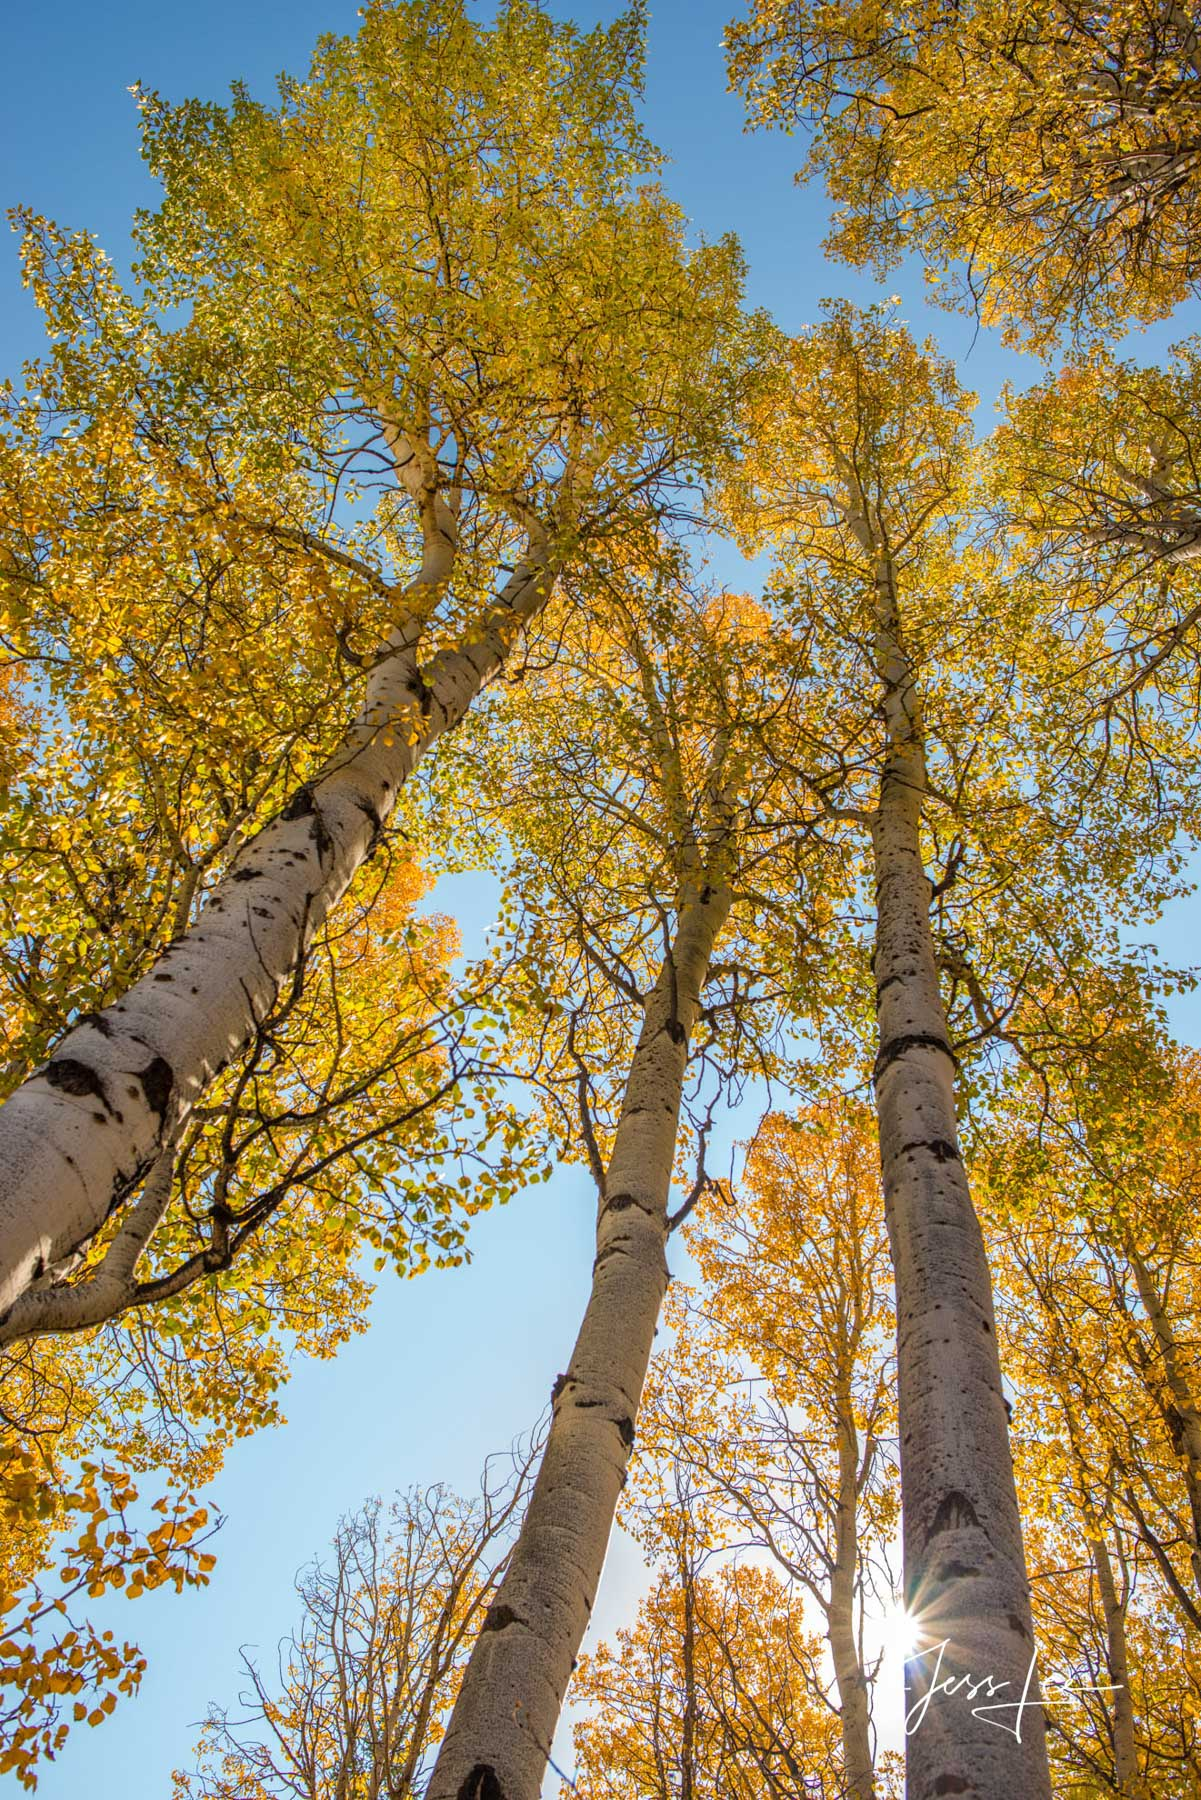 Limited Edition of 50 Exclusive high-resolution Museum Quality Fine Art Prints of Aspen Trees  Vertical Landscapes. Photos copyright...